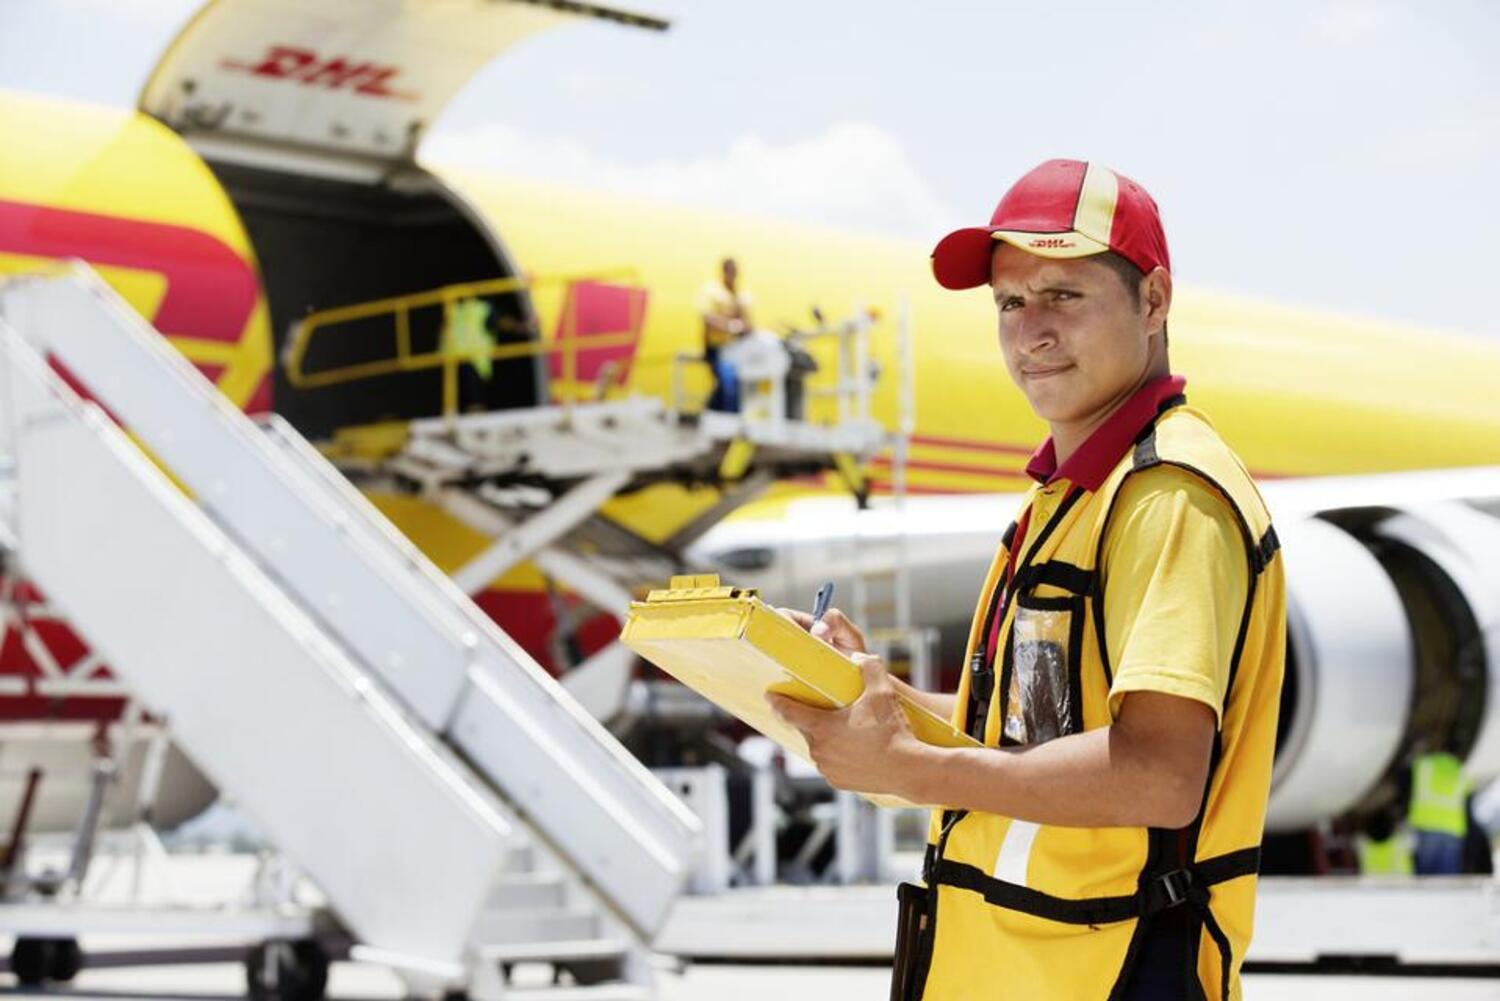 DHL's Radically Simple Approach to Employee Training